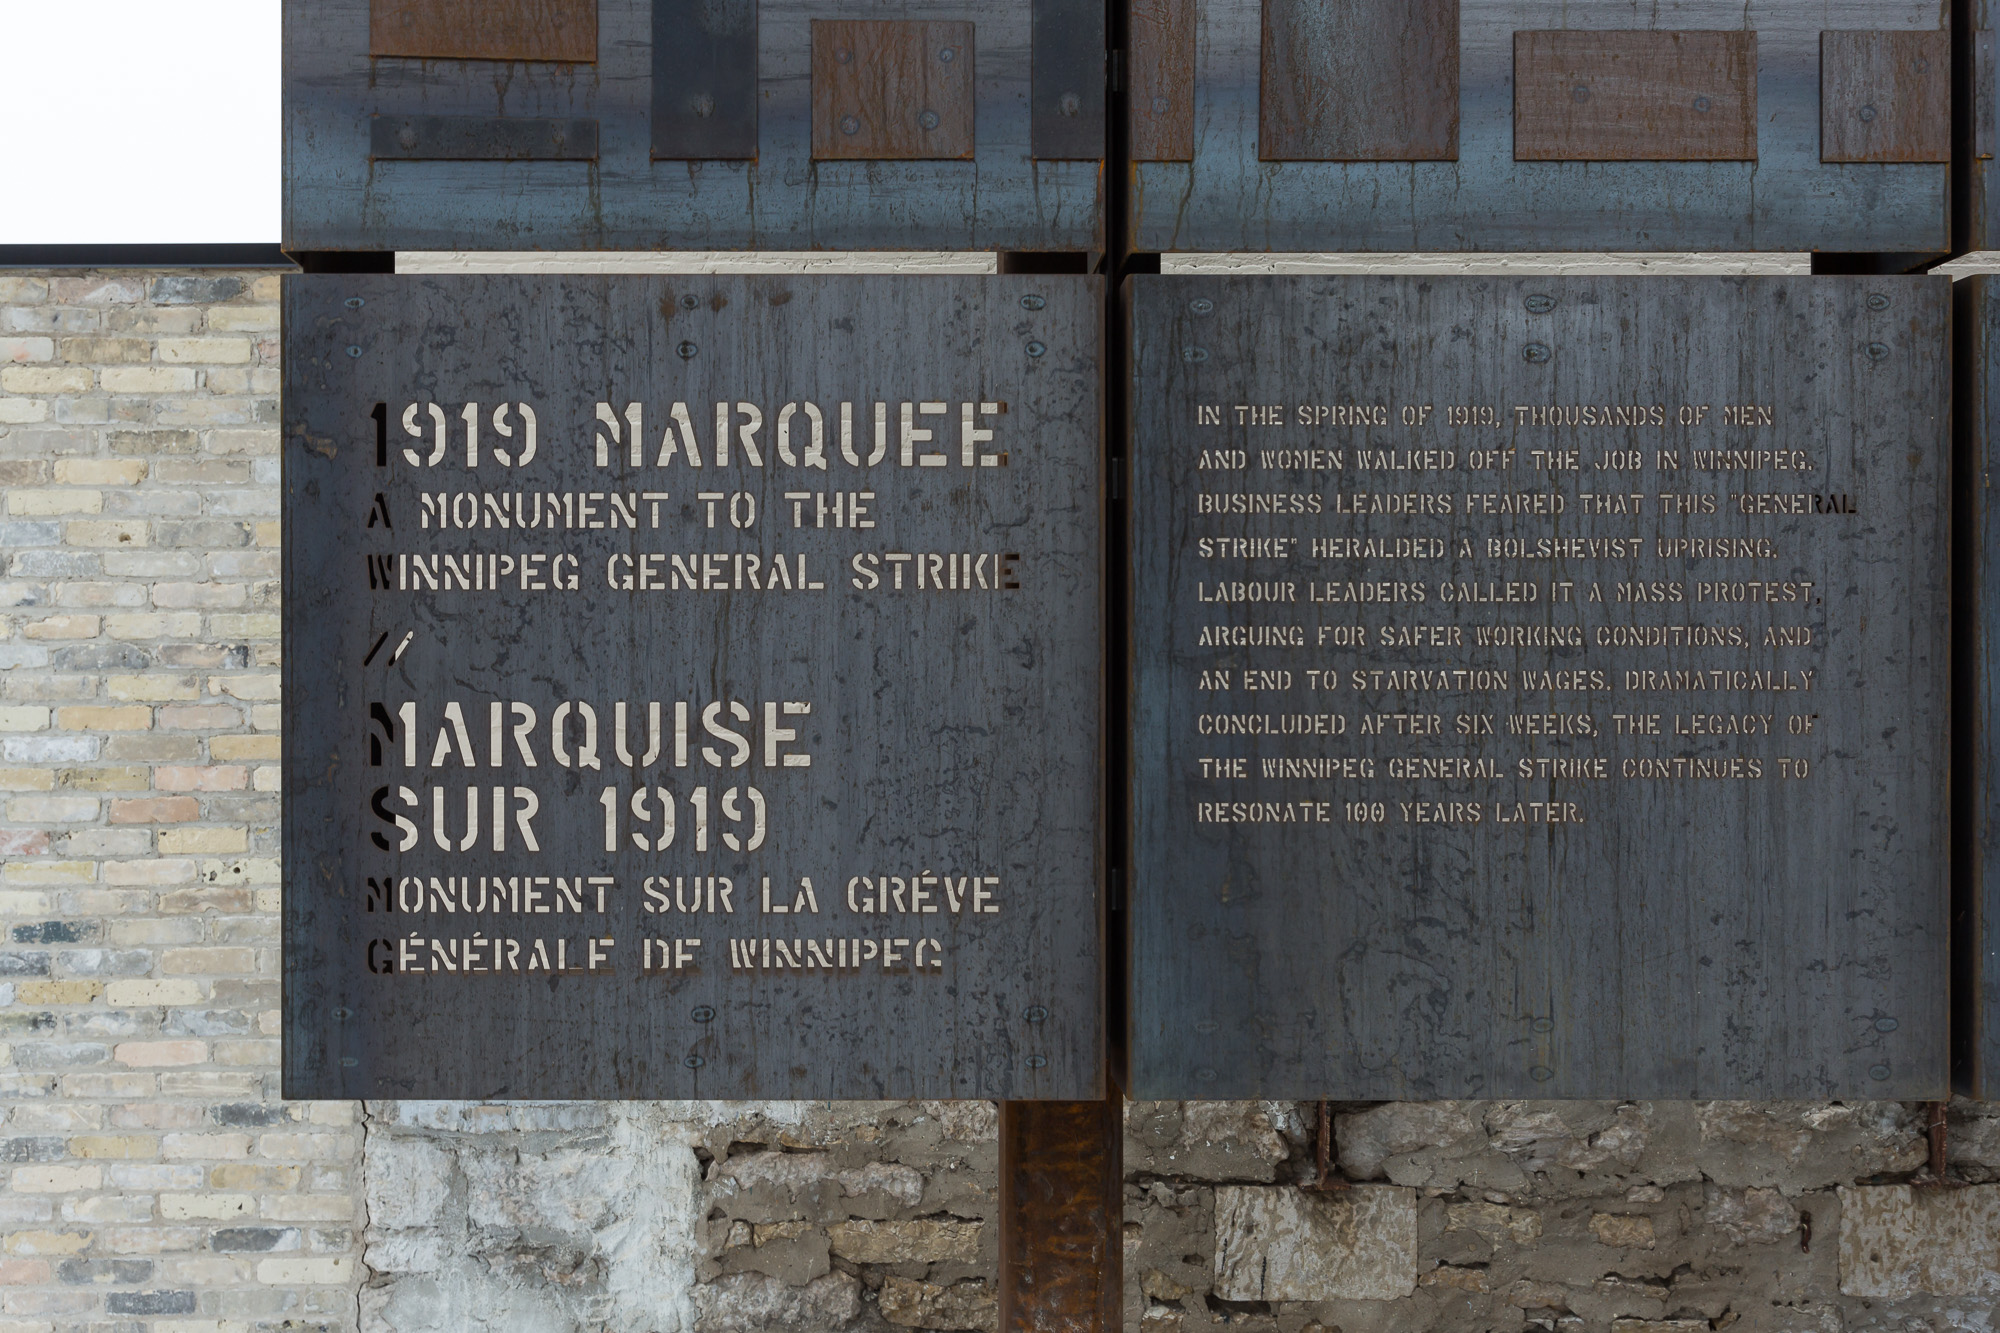 1919 Marquee Monument